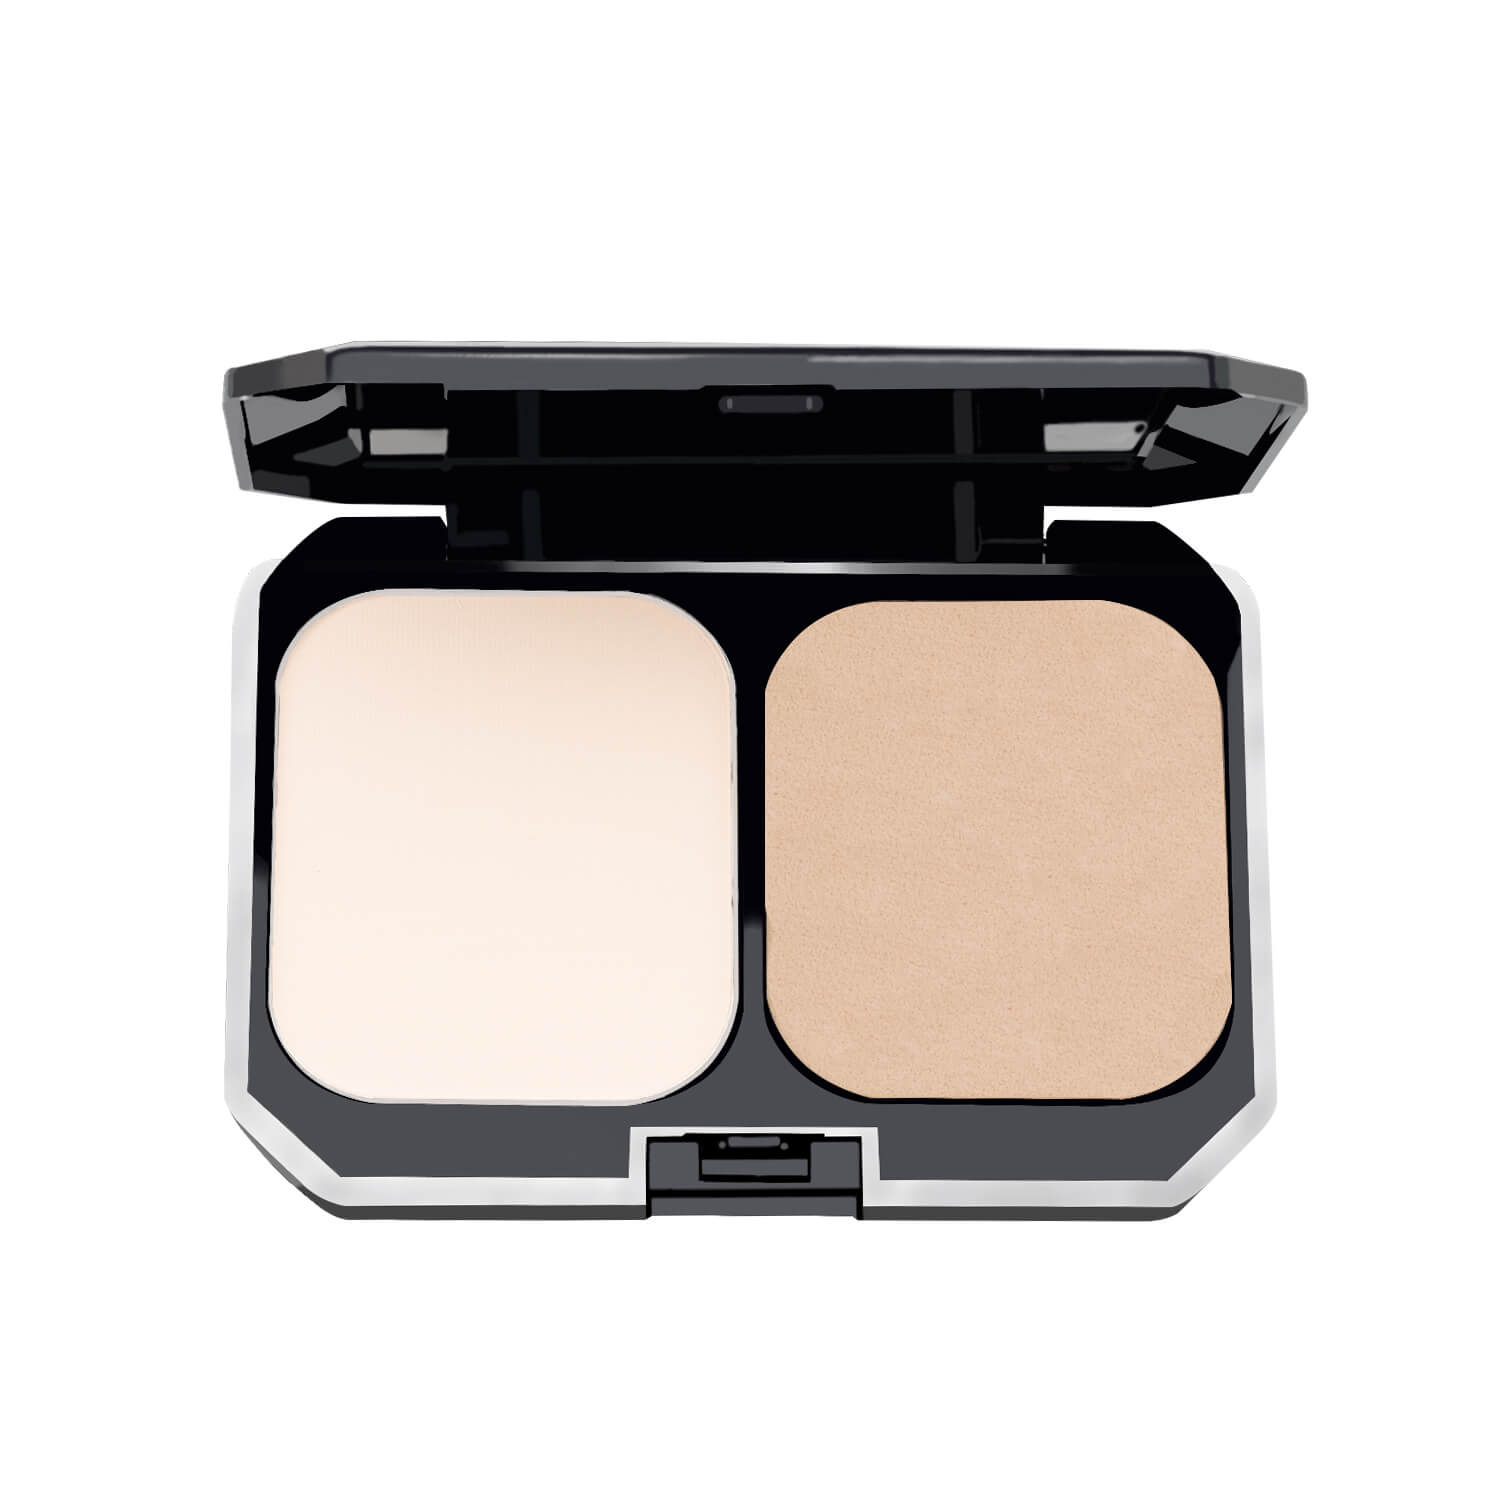 GlamGals 2 in 1 Two Way Cake Compact Makeup + Foundation10 g